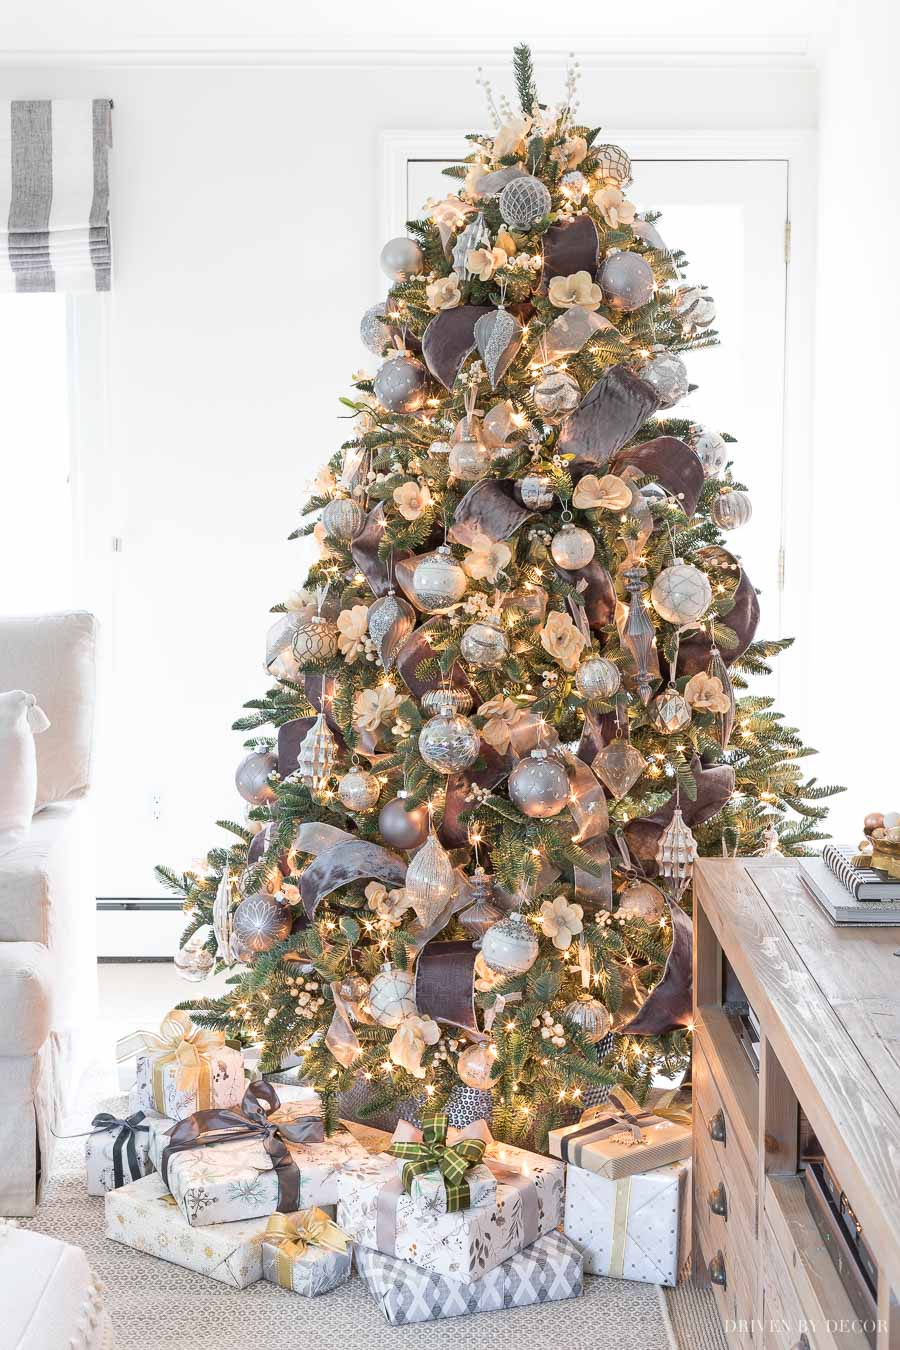 This faux Christmas tree is a favorite - SO full and realistic!